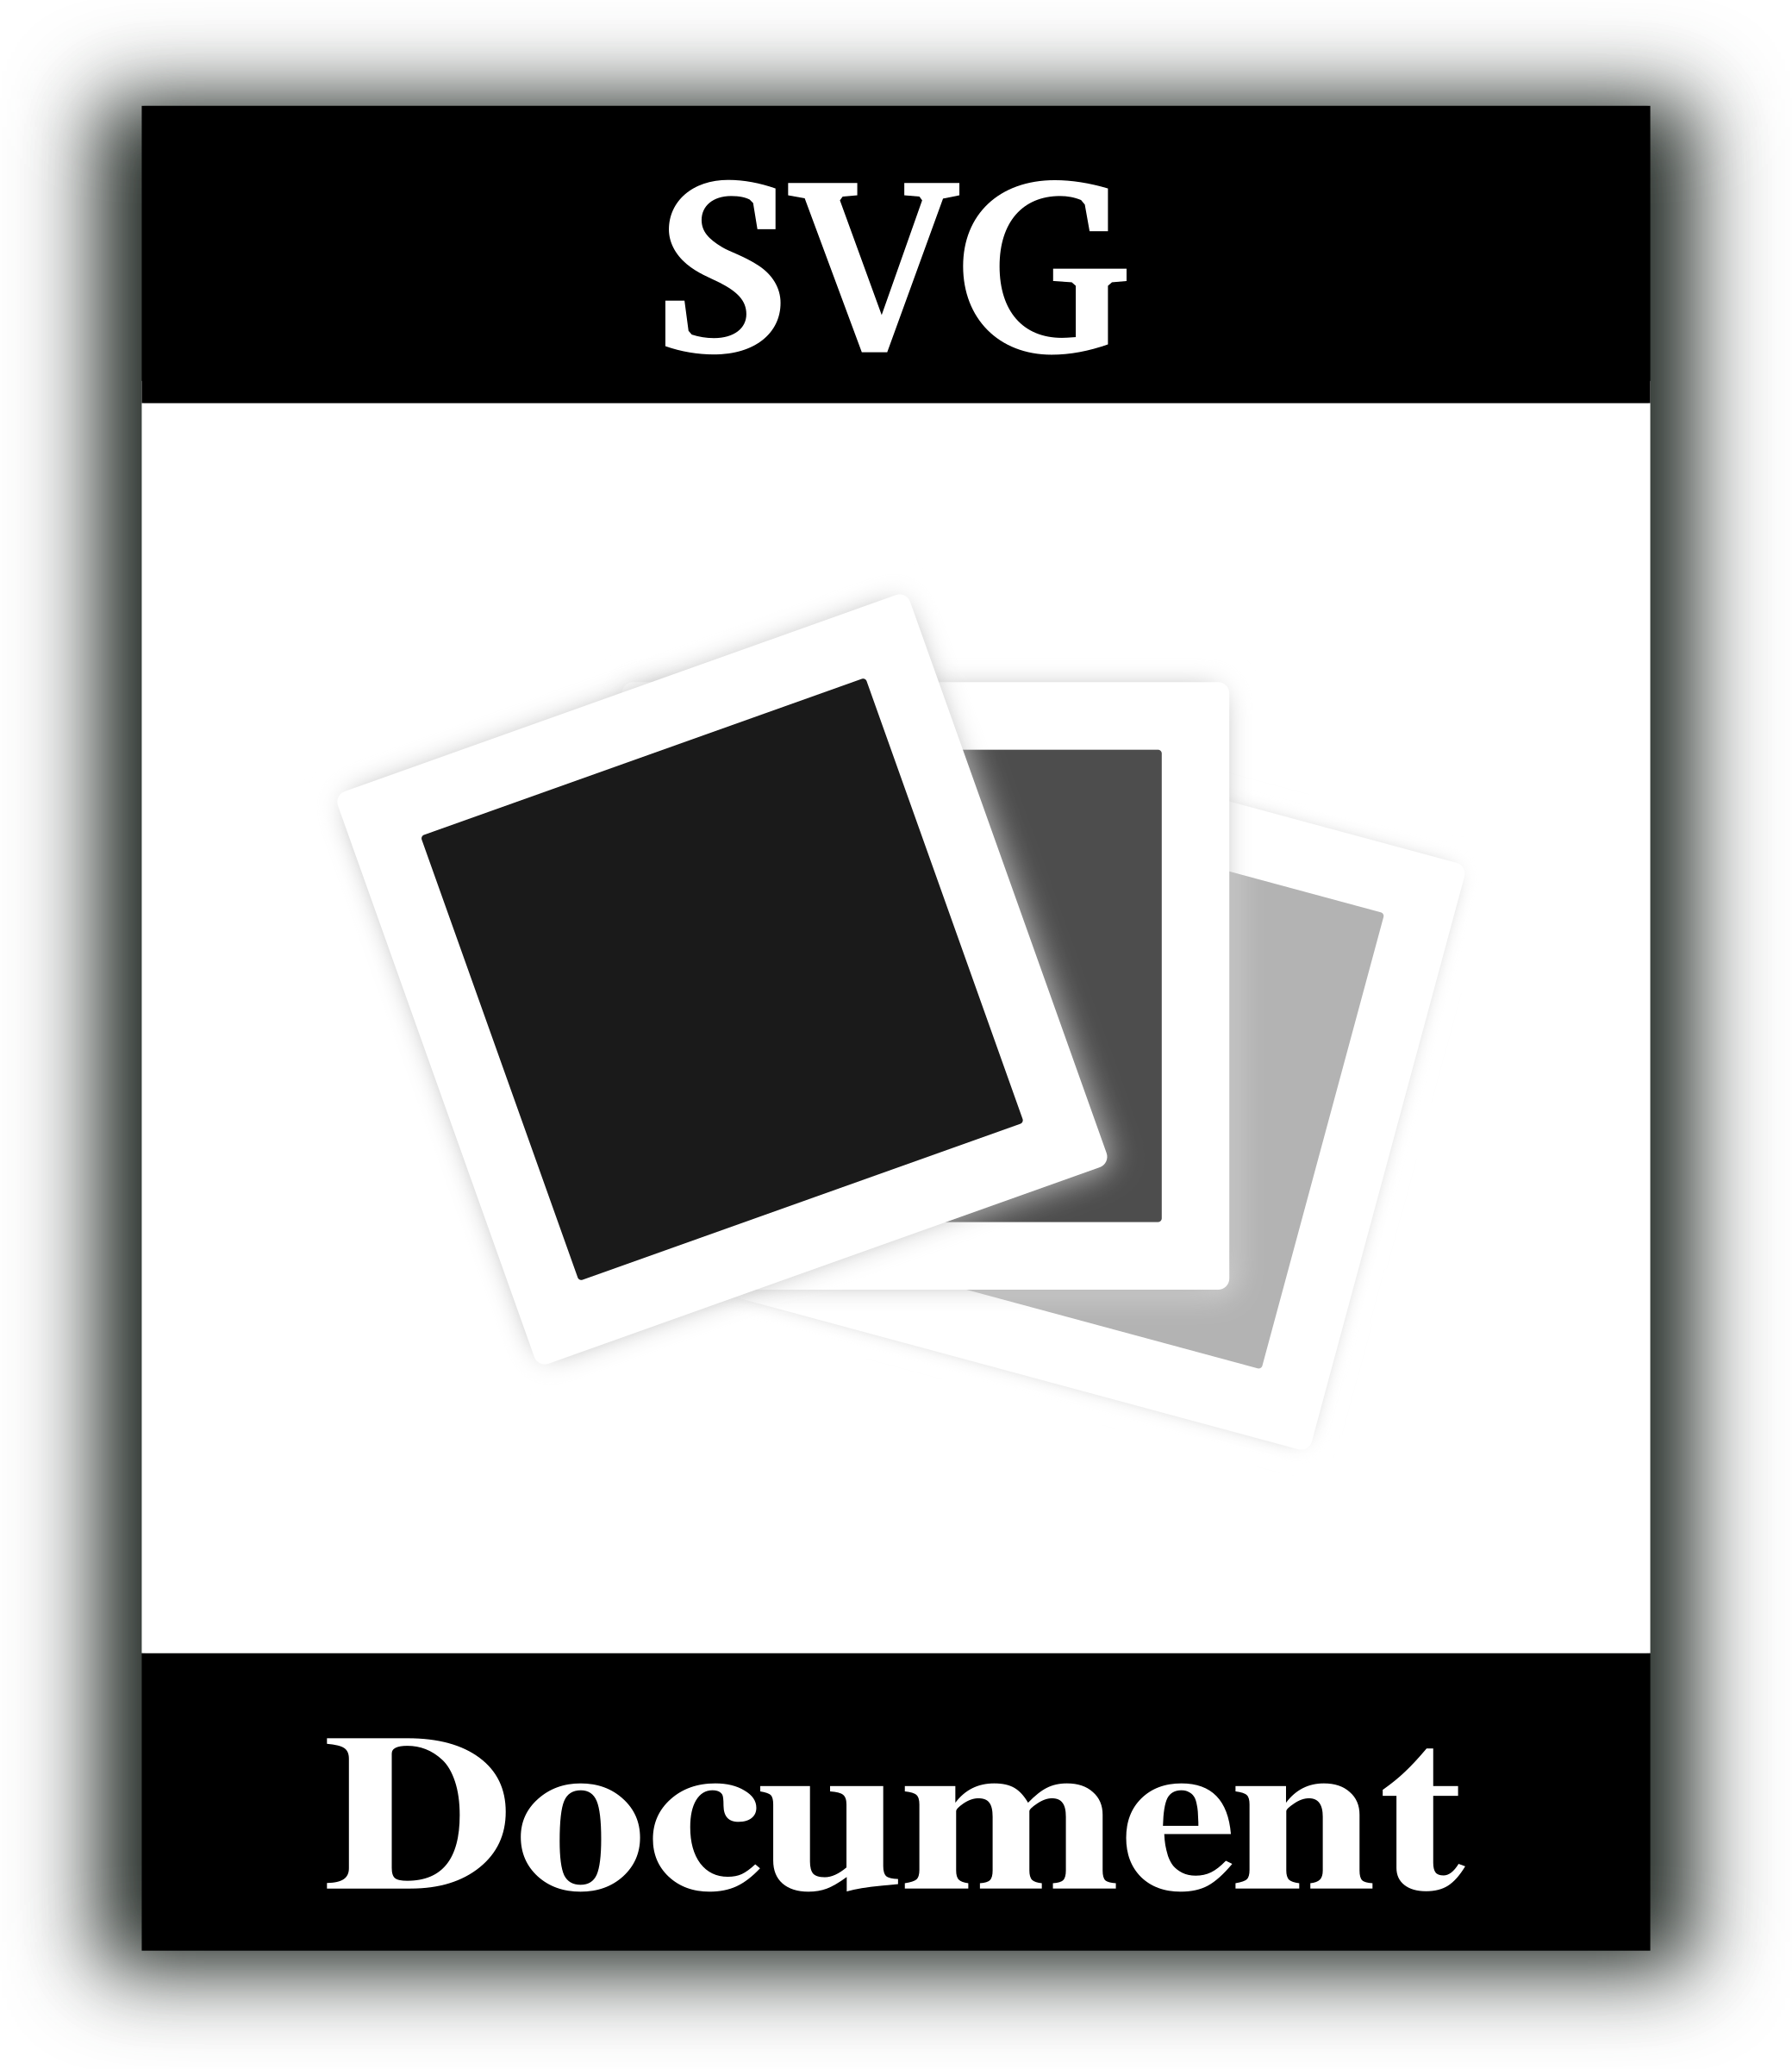 SVG icon by gsagri04